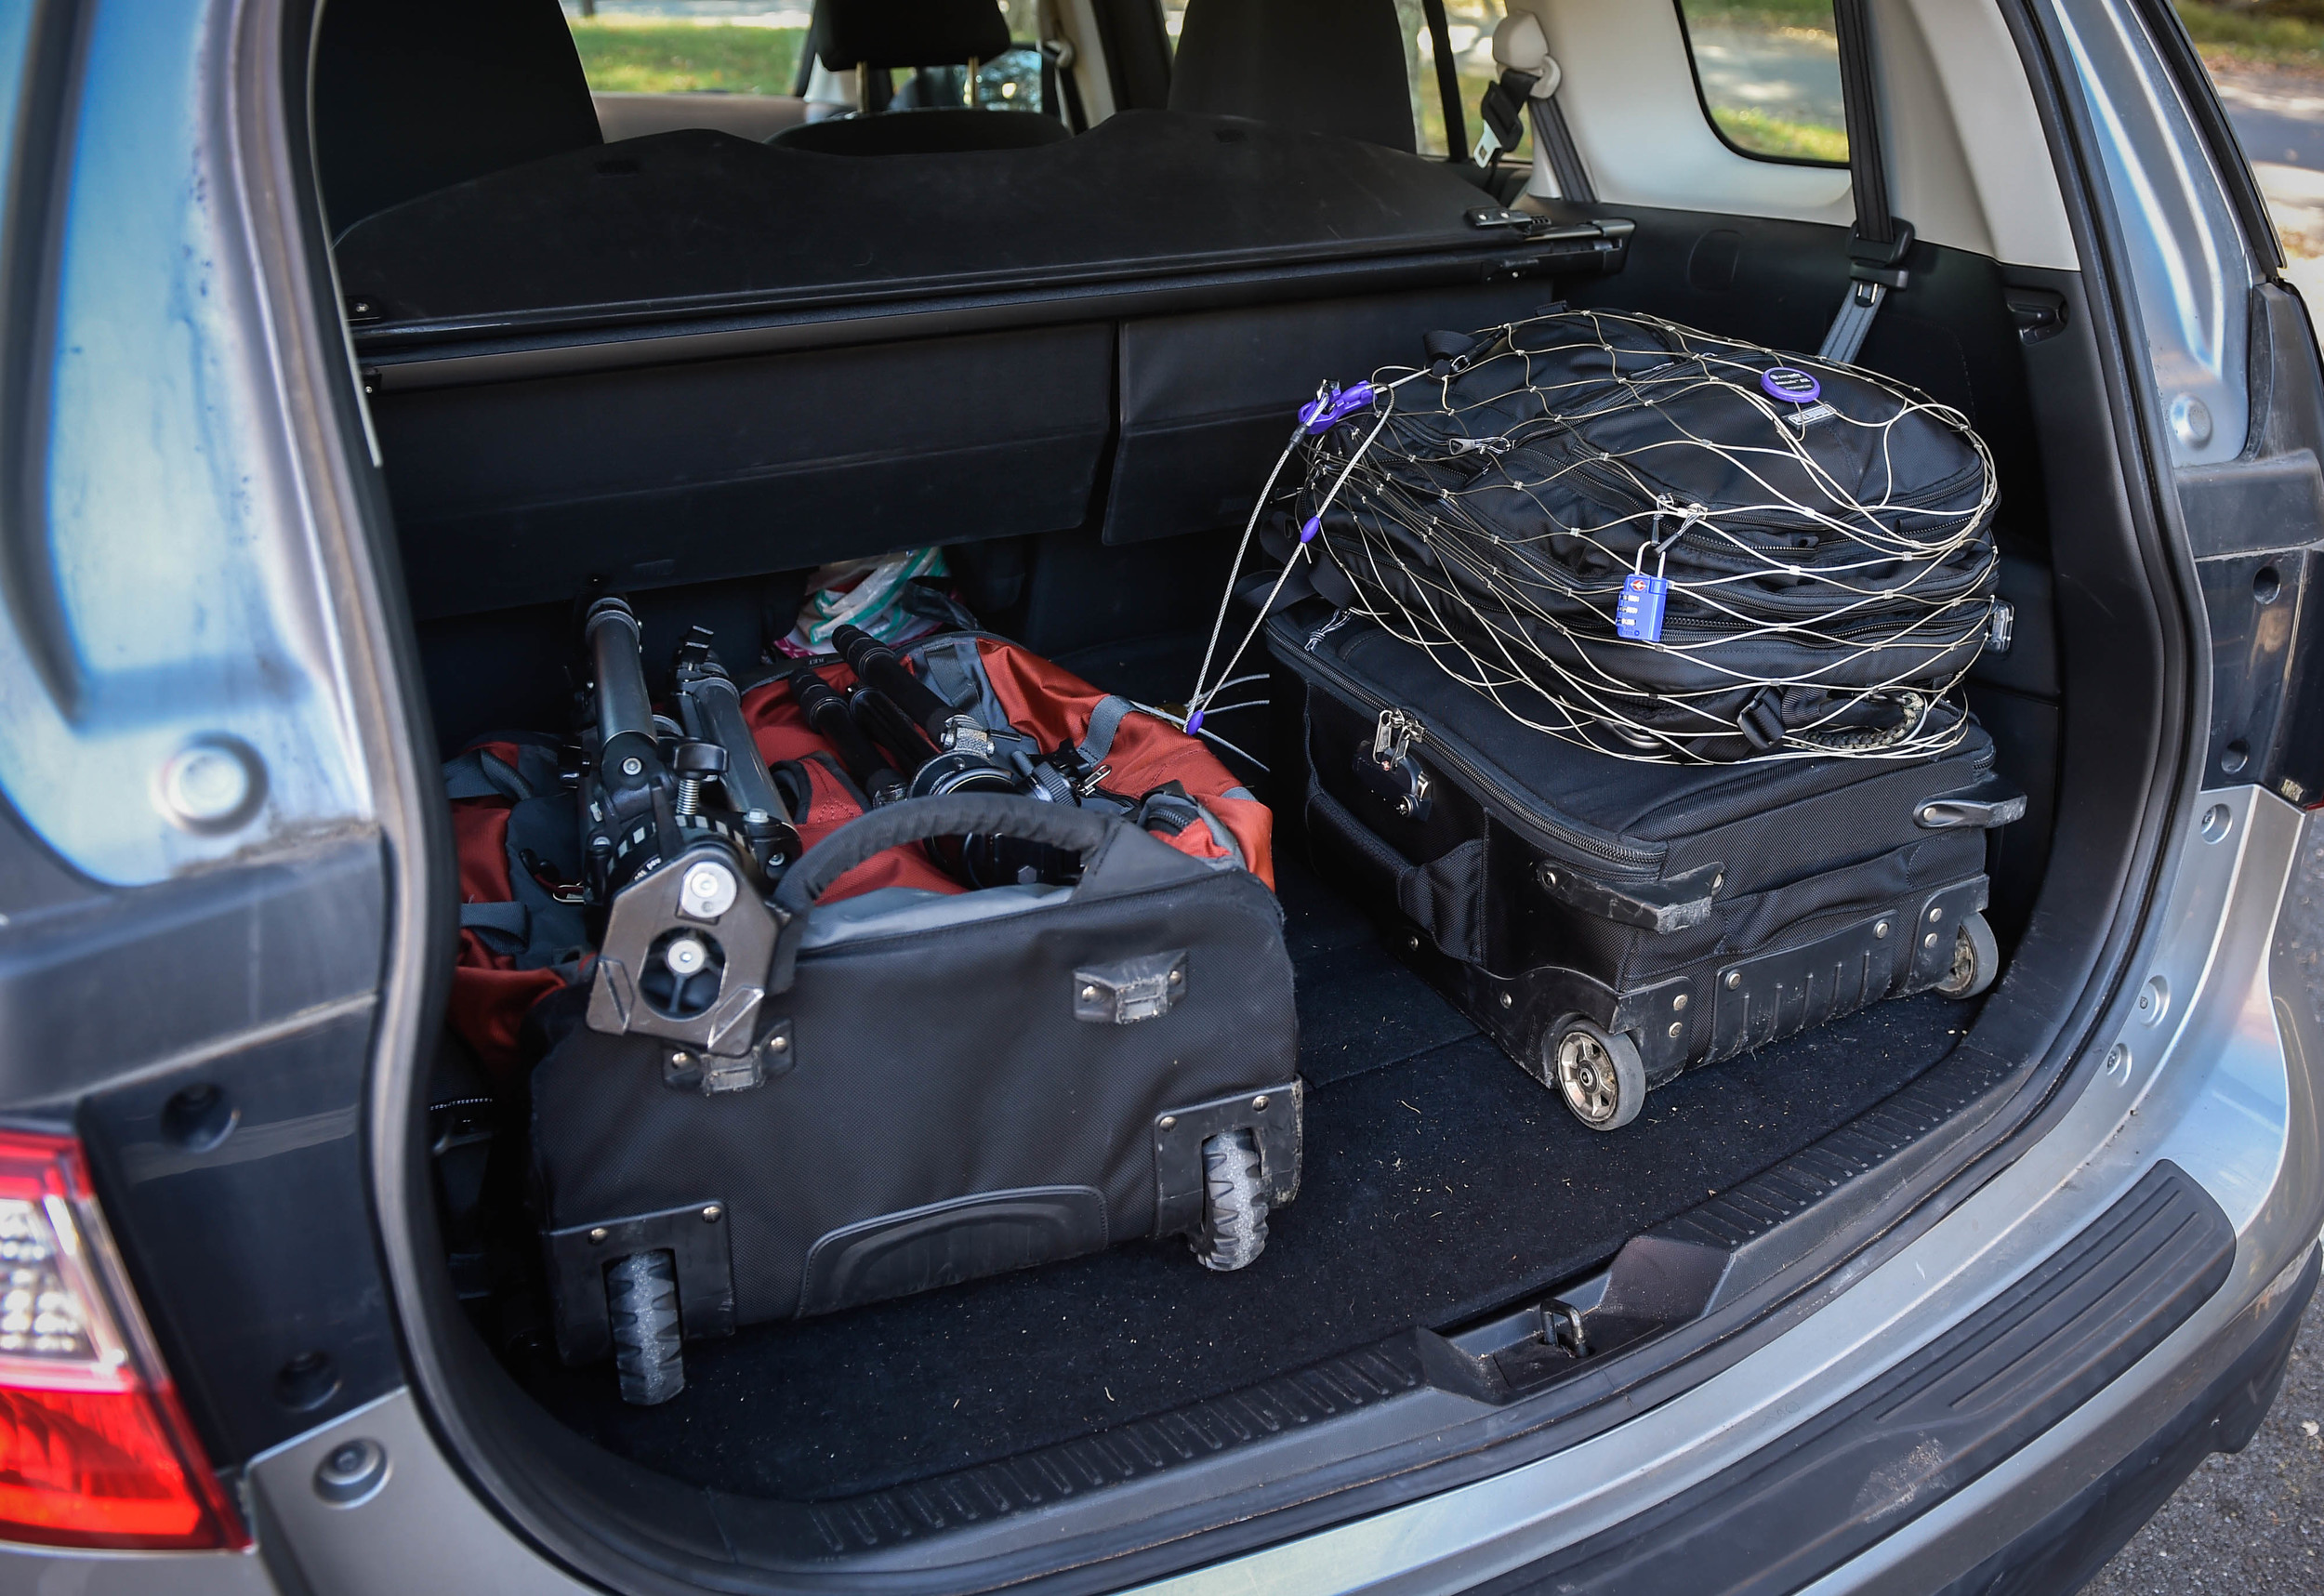 While a trunk seems more secure than an SUV or hatchback, it's still no guarantee that your equipment is any safer. Out of site is good, but it doesn't mean out of mind.